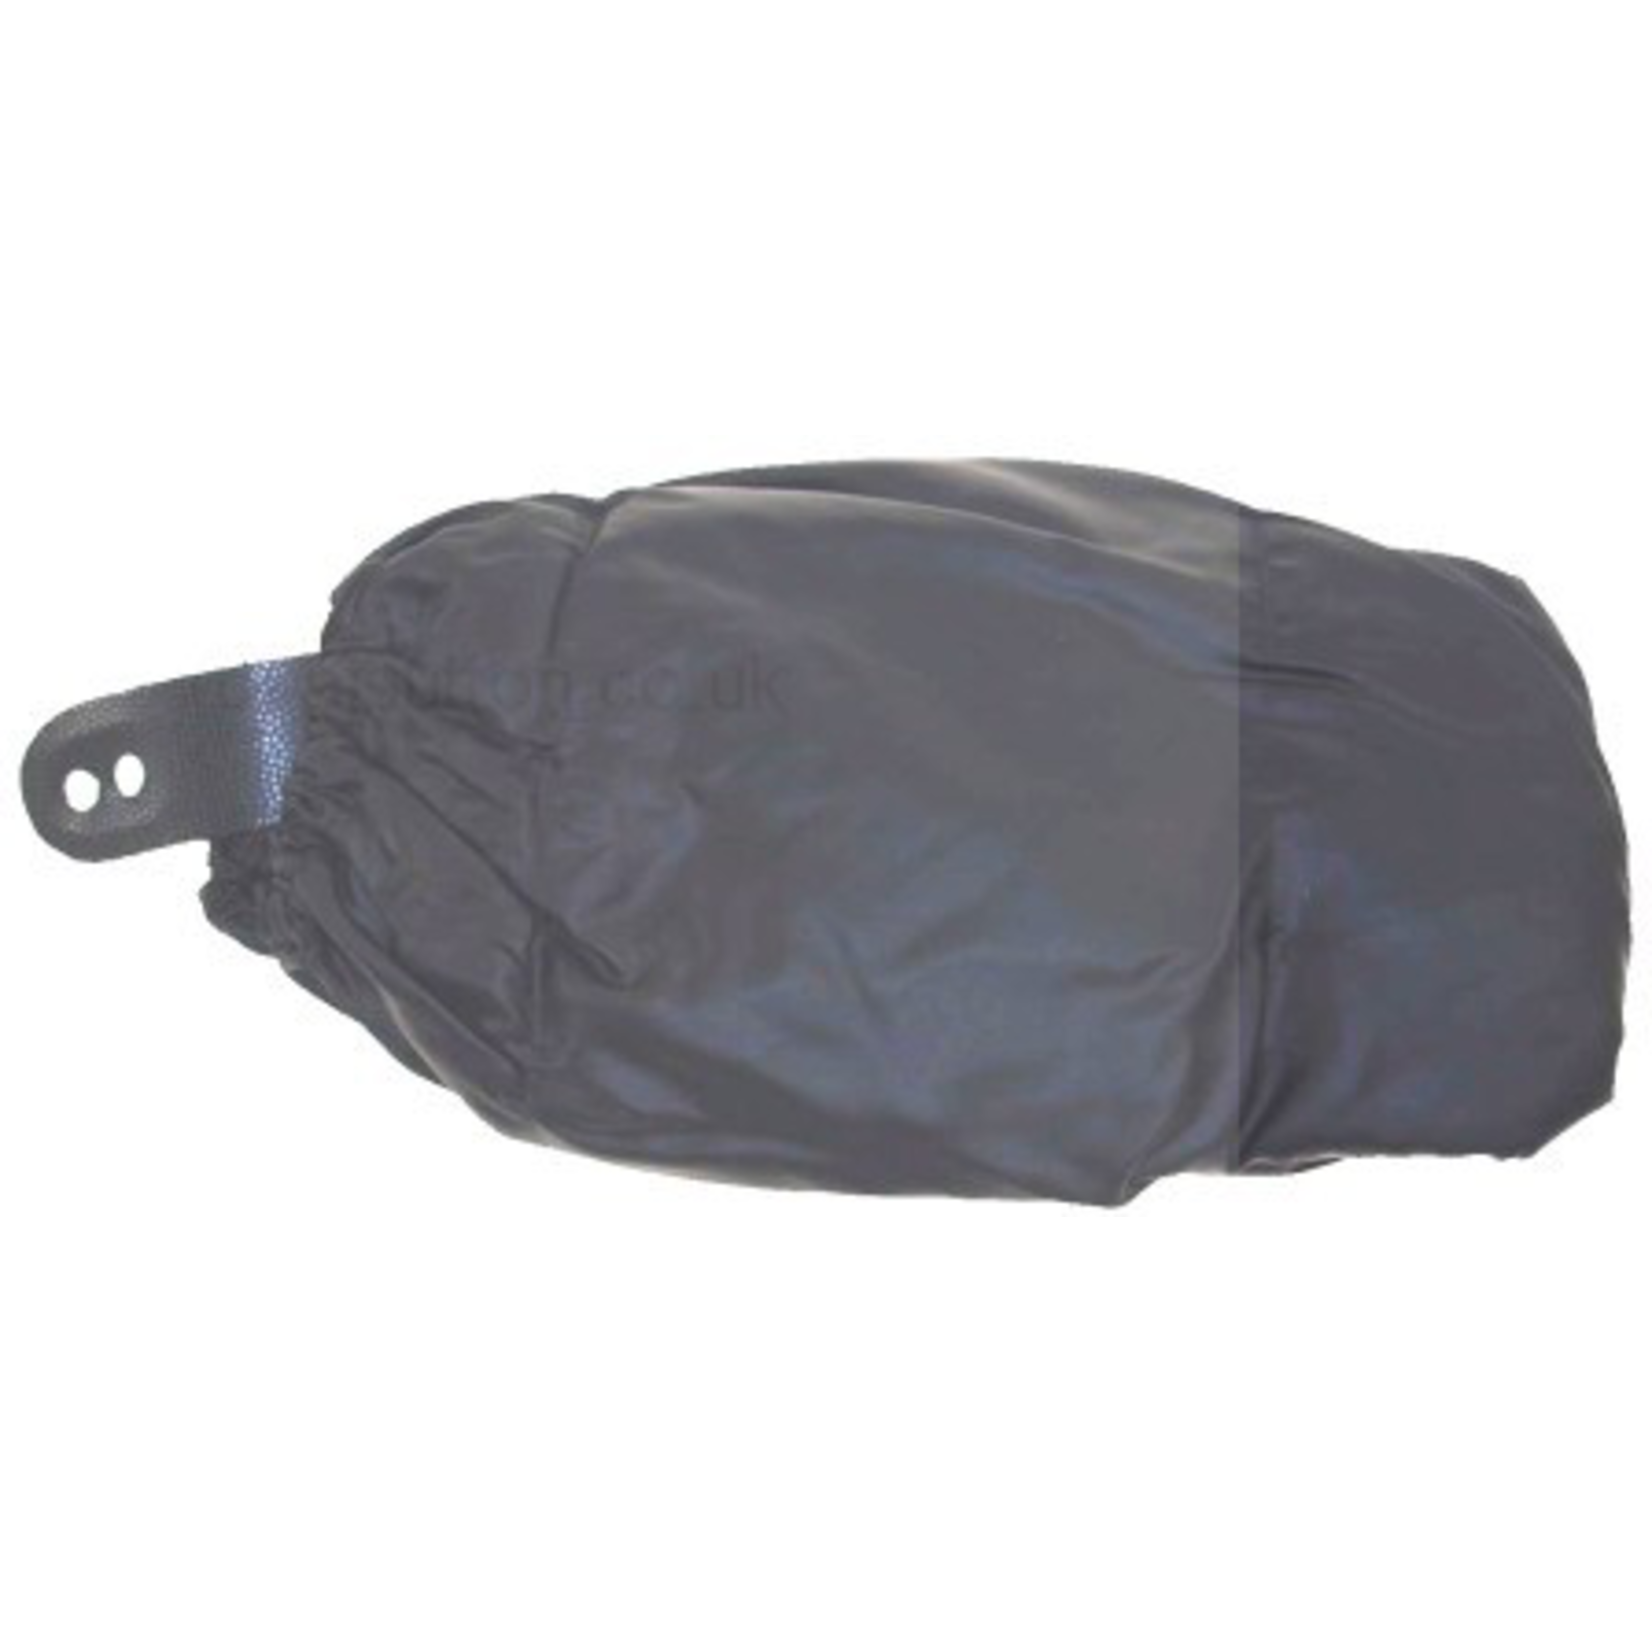 Parts Saddle Rain Cover, GTS/GTV